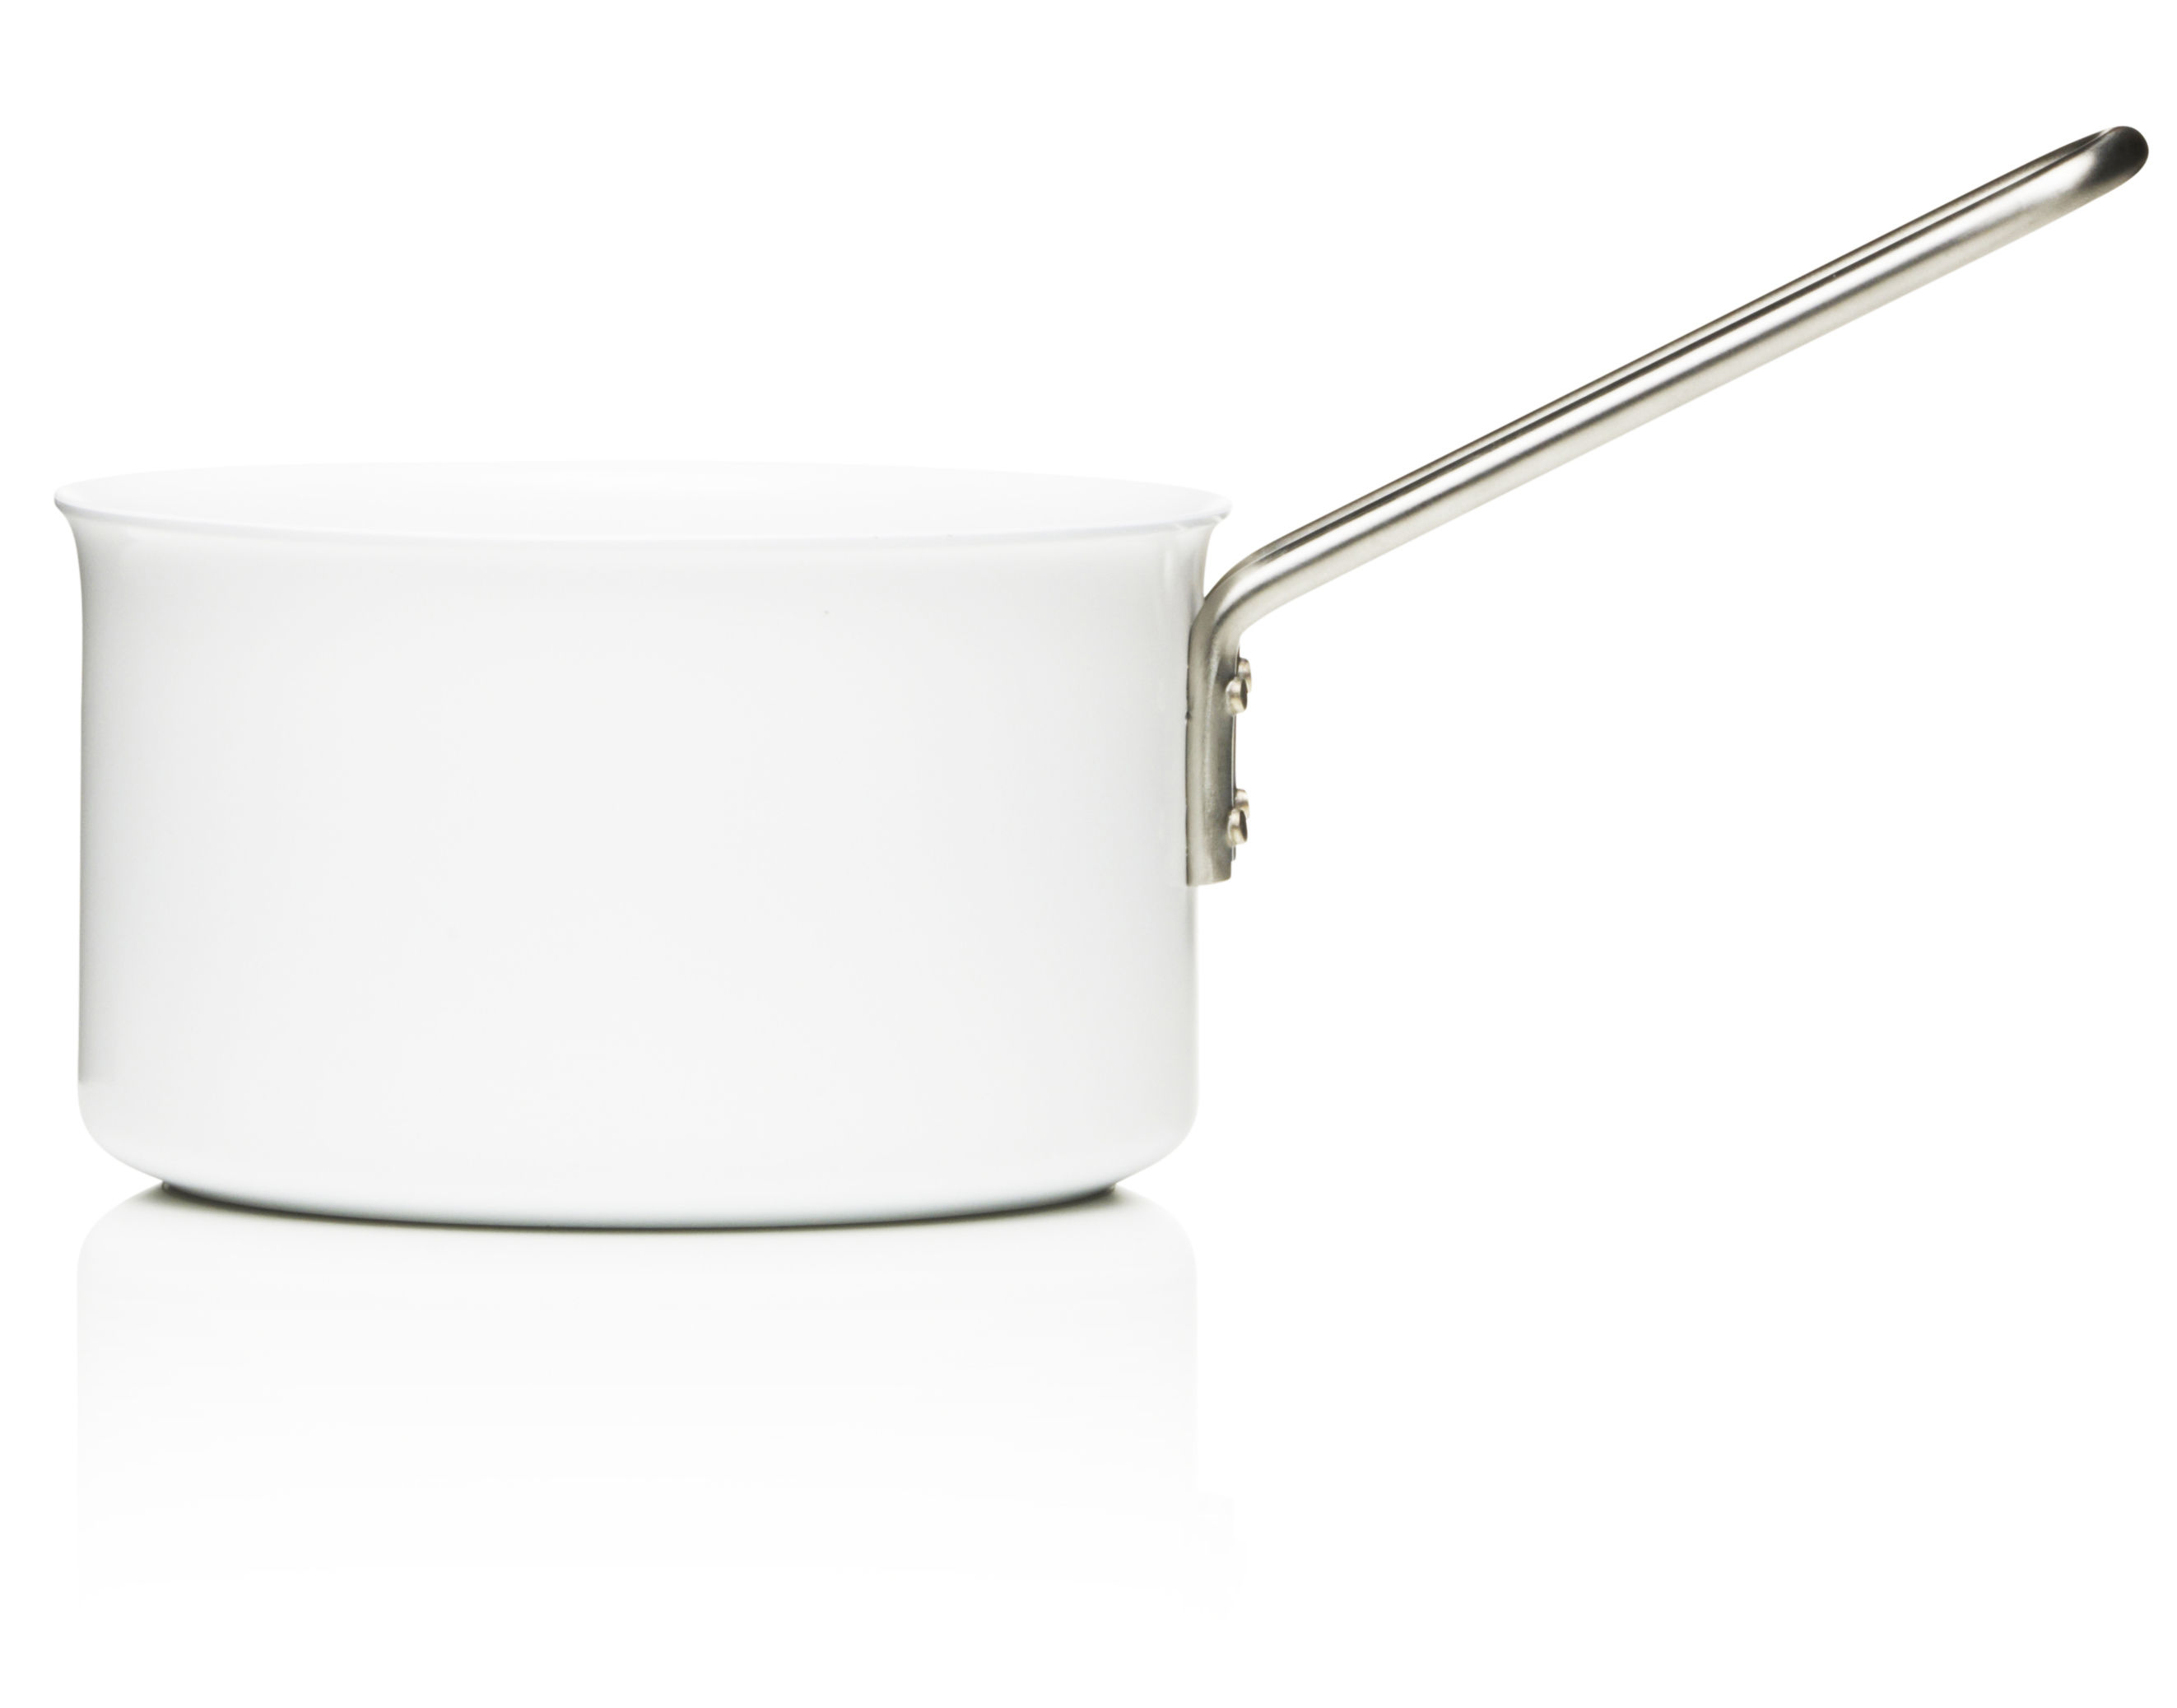 Kitchenware - Pots & Pans - White Line saucepan - 1.8L - Web exclusivity by Eva Trio - White - Aluminium, Ceramic, Stainless steel